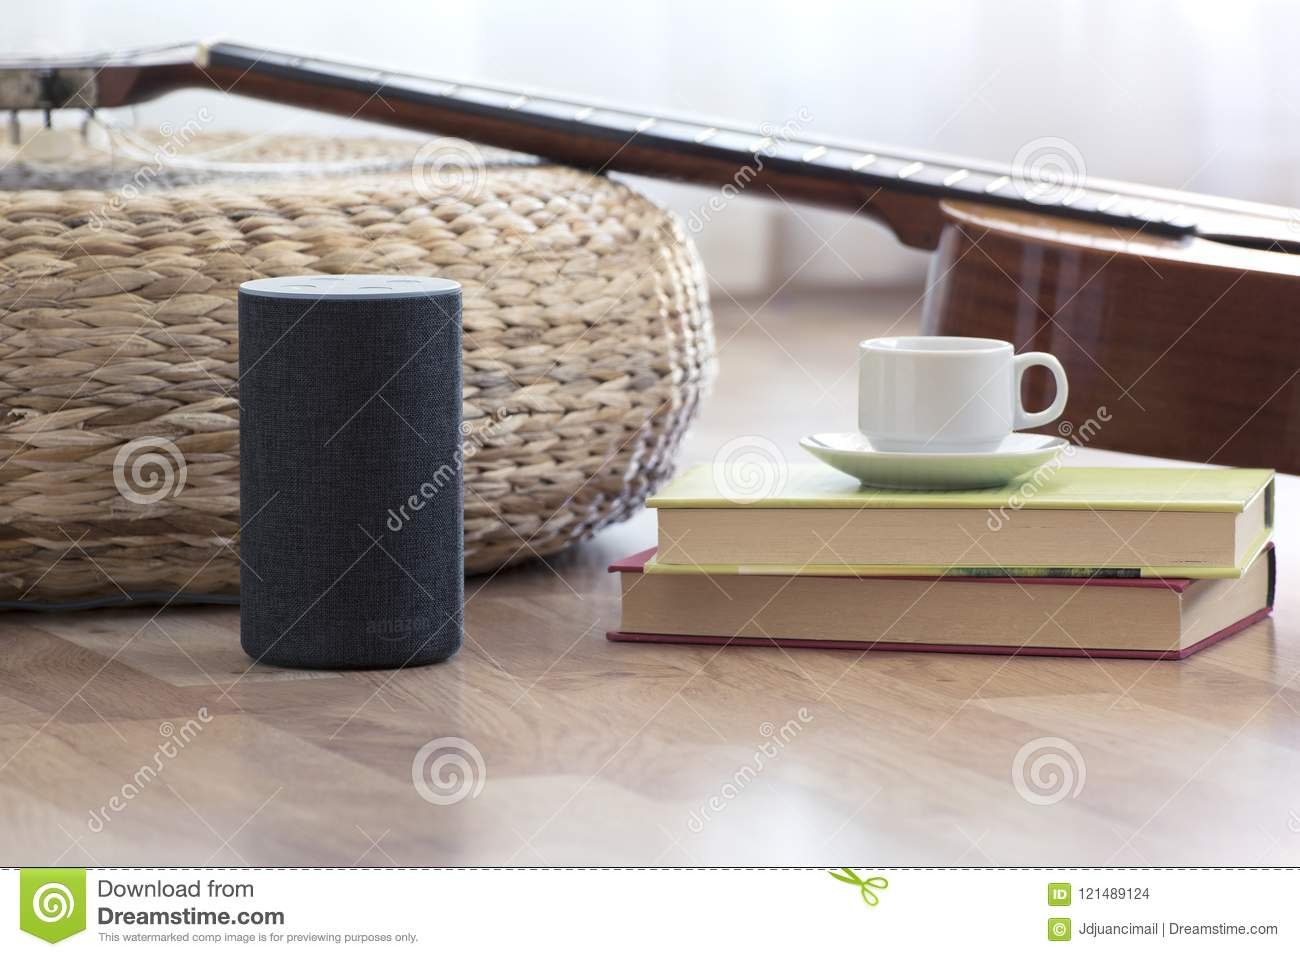 BARCELONA - JULY 2018: Amazon Echo Smart Home Alexa Voice Service in a living room on July 17, 2018